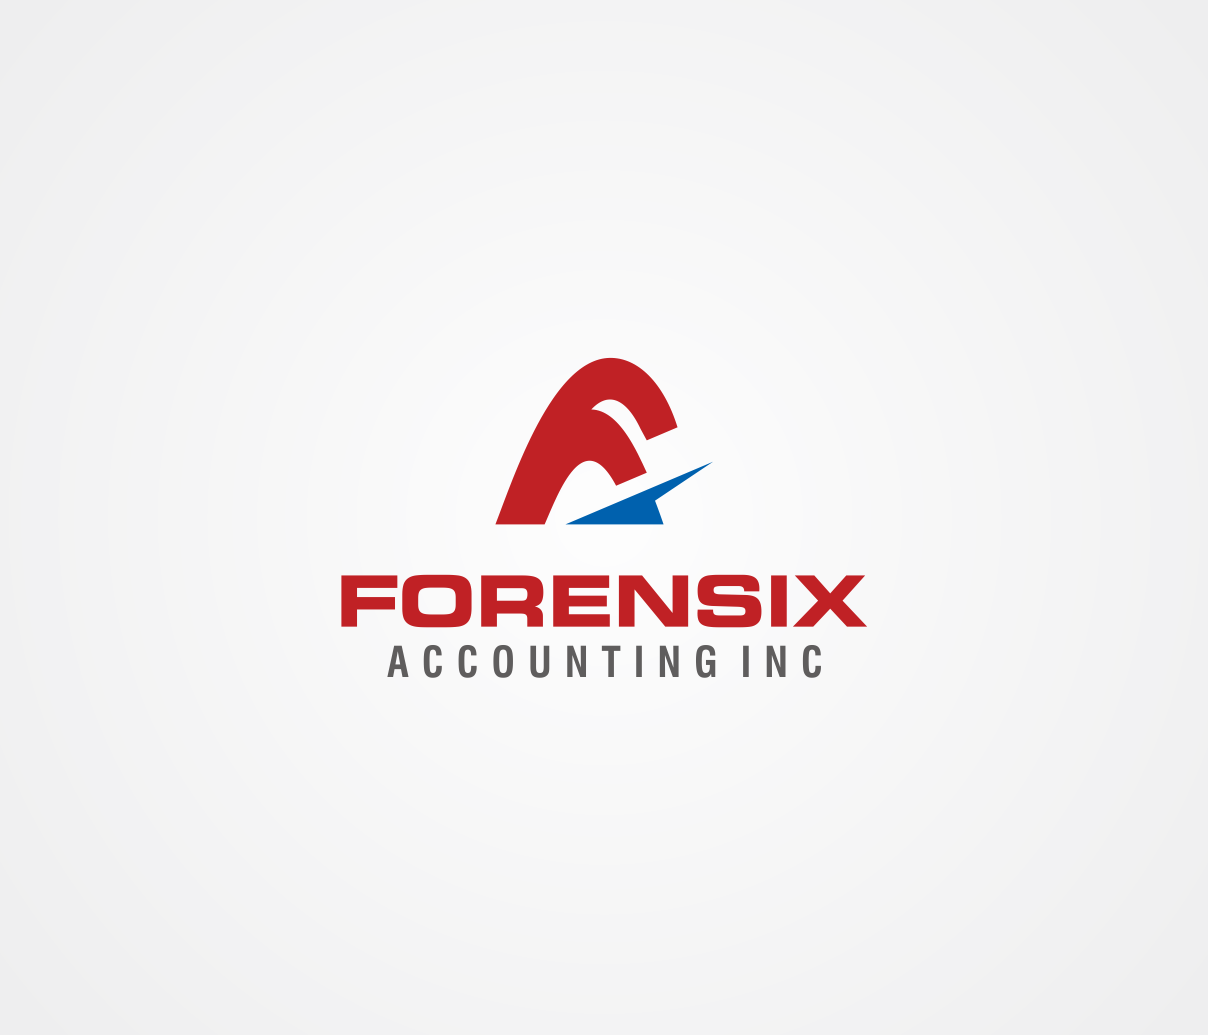 Logo Design by Armada Jamaluddin - Entry No. 52 in the Logo Design Contest FORENSIX ACCOUNTING INC. Logo Design.